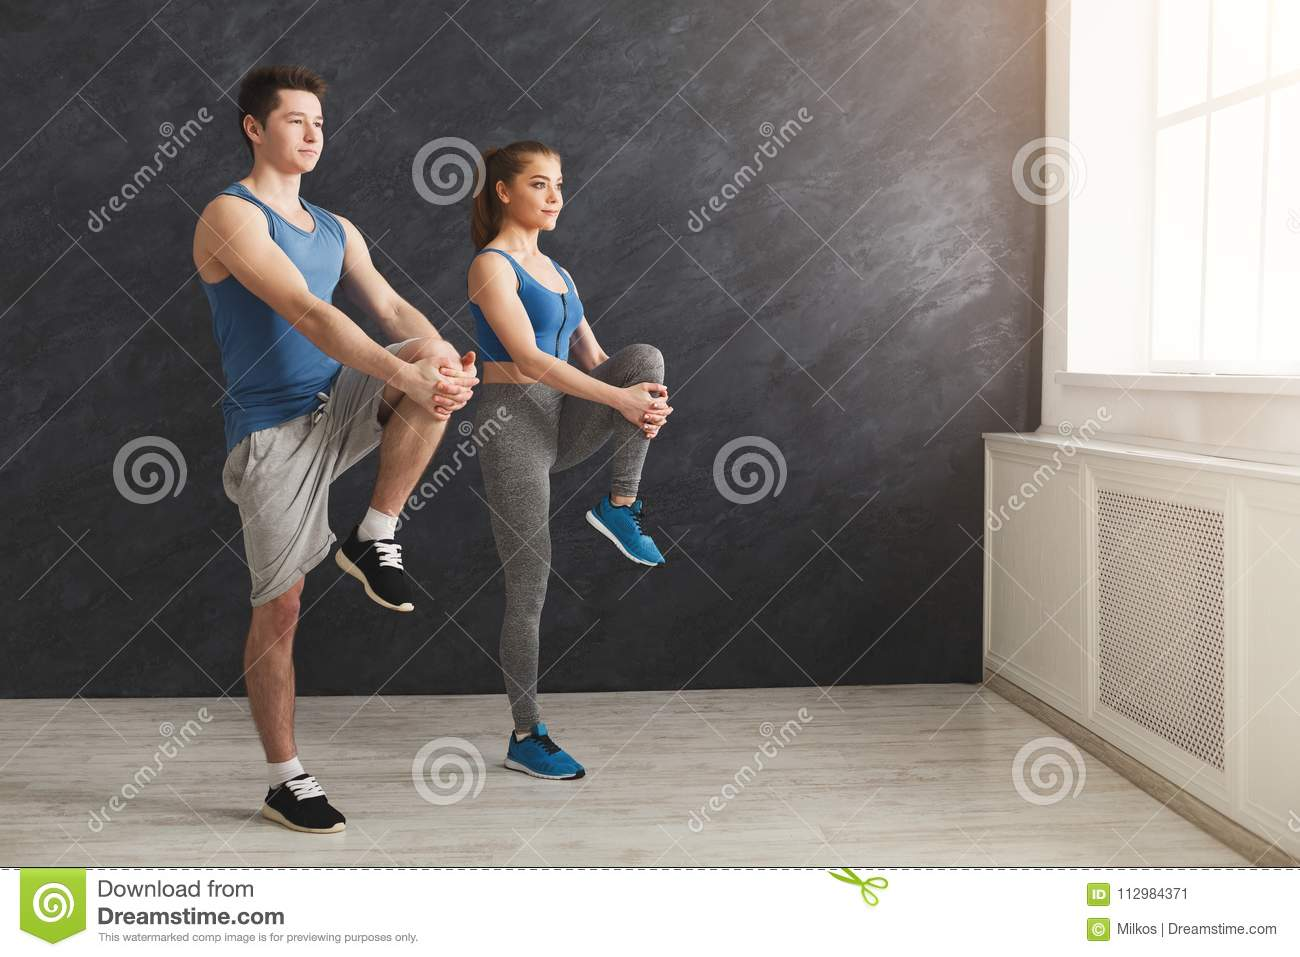 Couple warming up legs before training